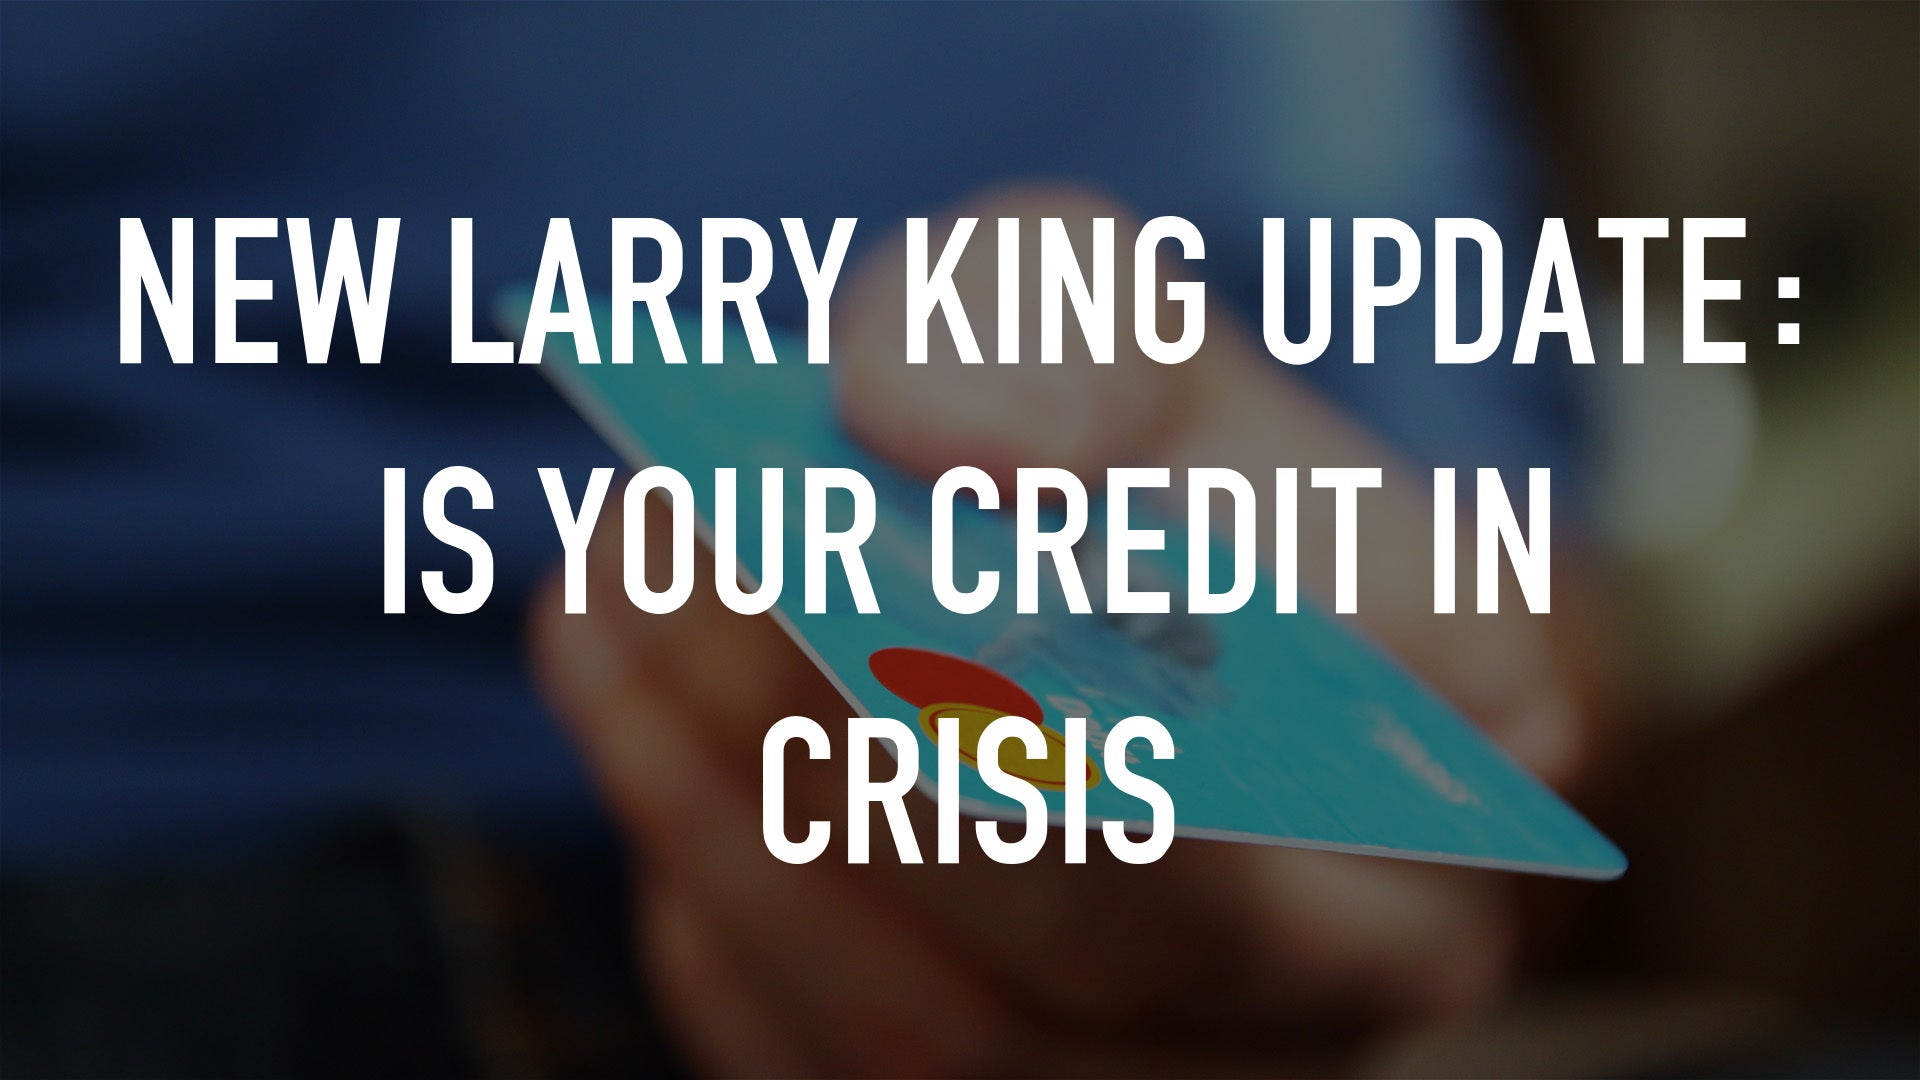 New Larry King Update: Is Your Credit In Crisis